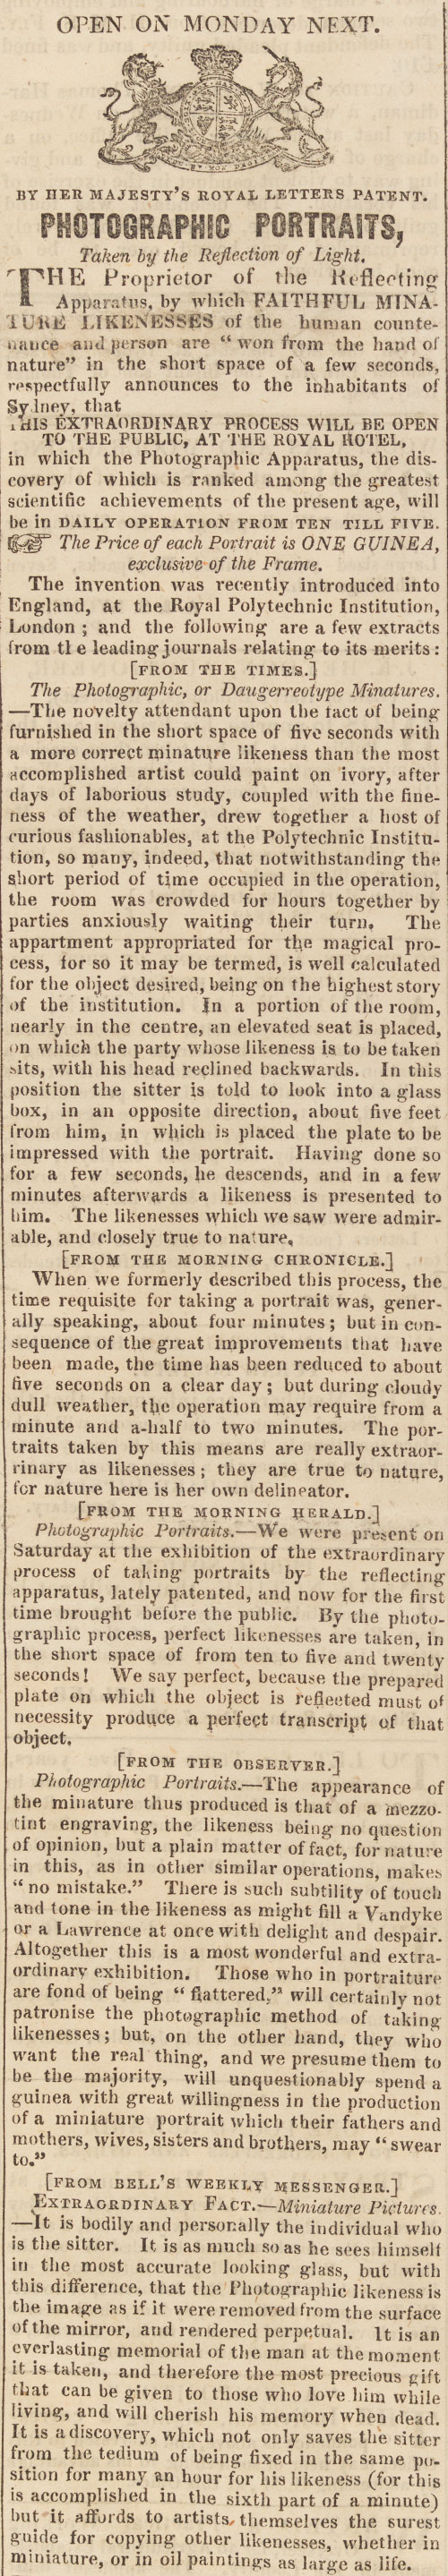 Advertisement, 'Photographic Portraits, Taken by the Reflection of Light', The Australian, 9 December 1842, p.1.